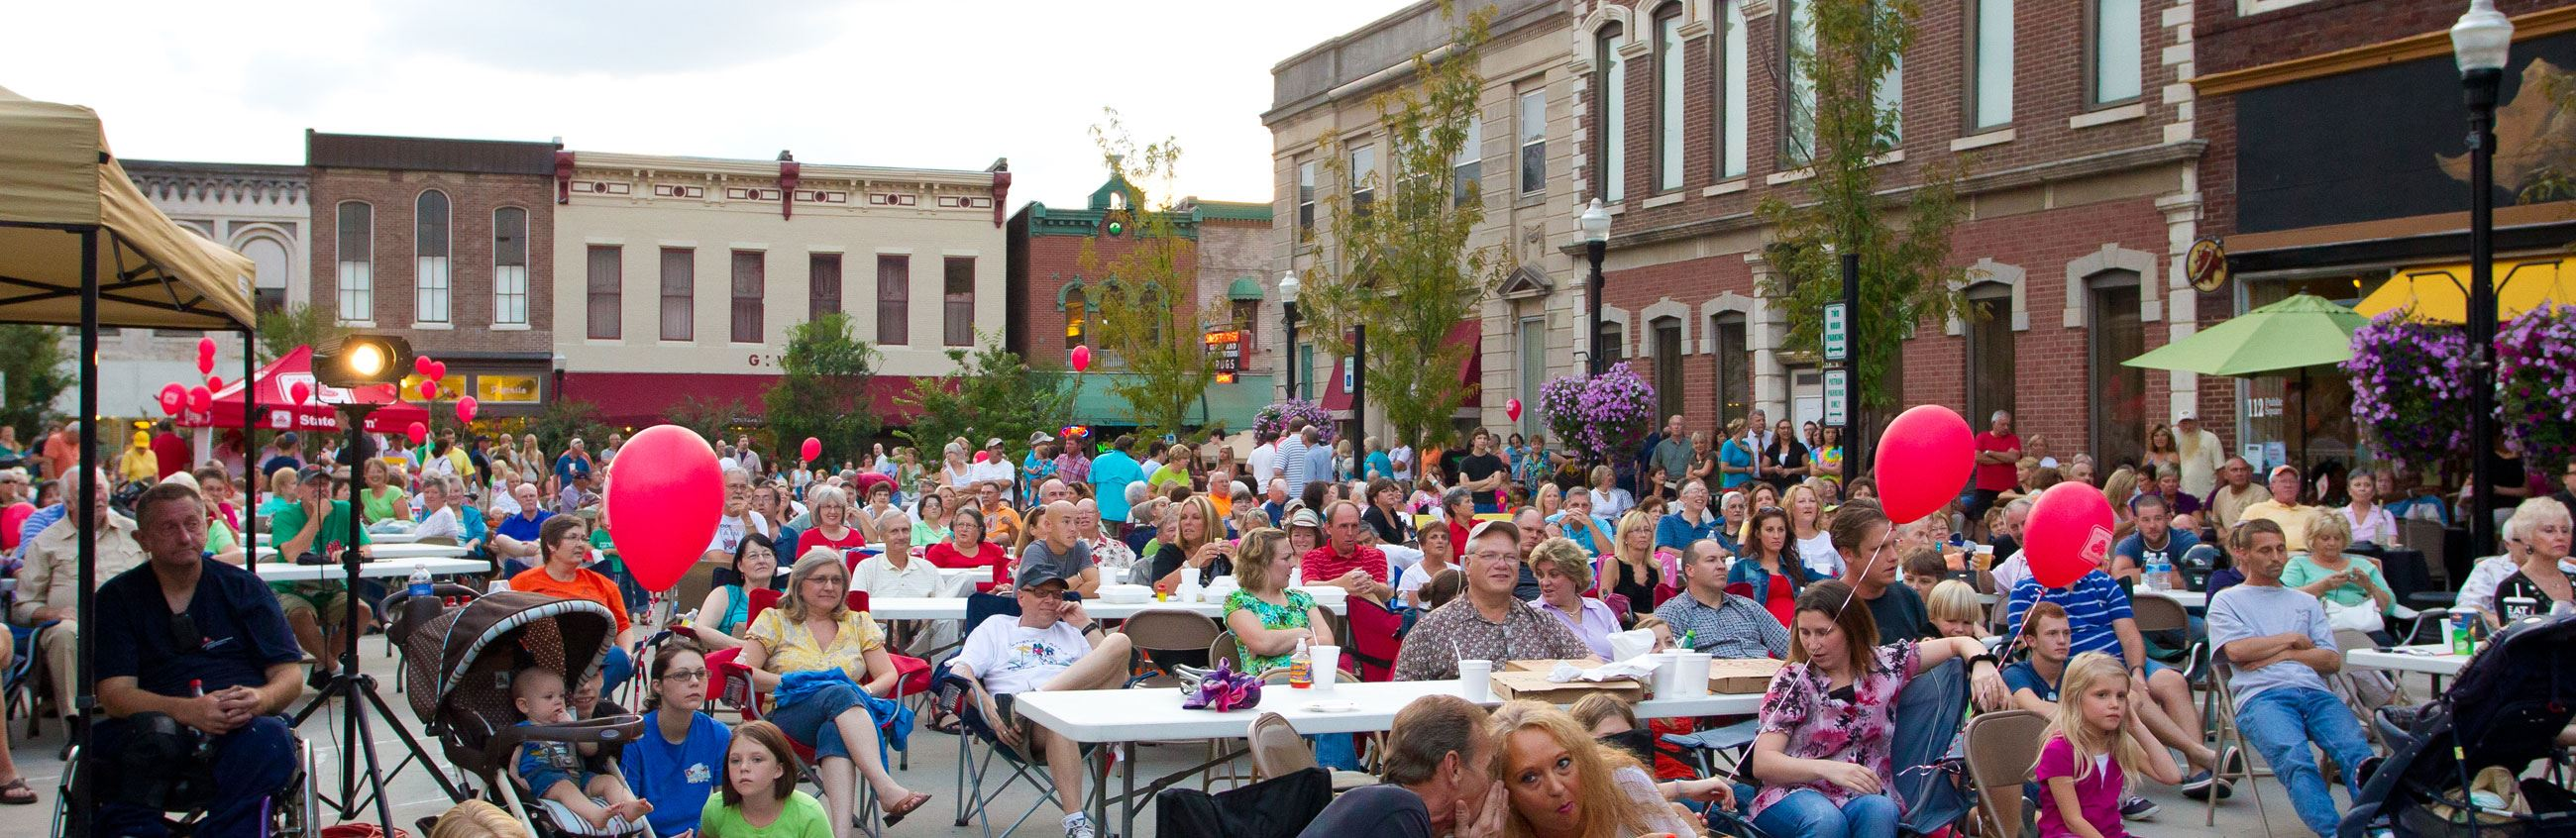 Third Thursday on Main Music Festival